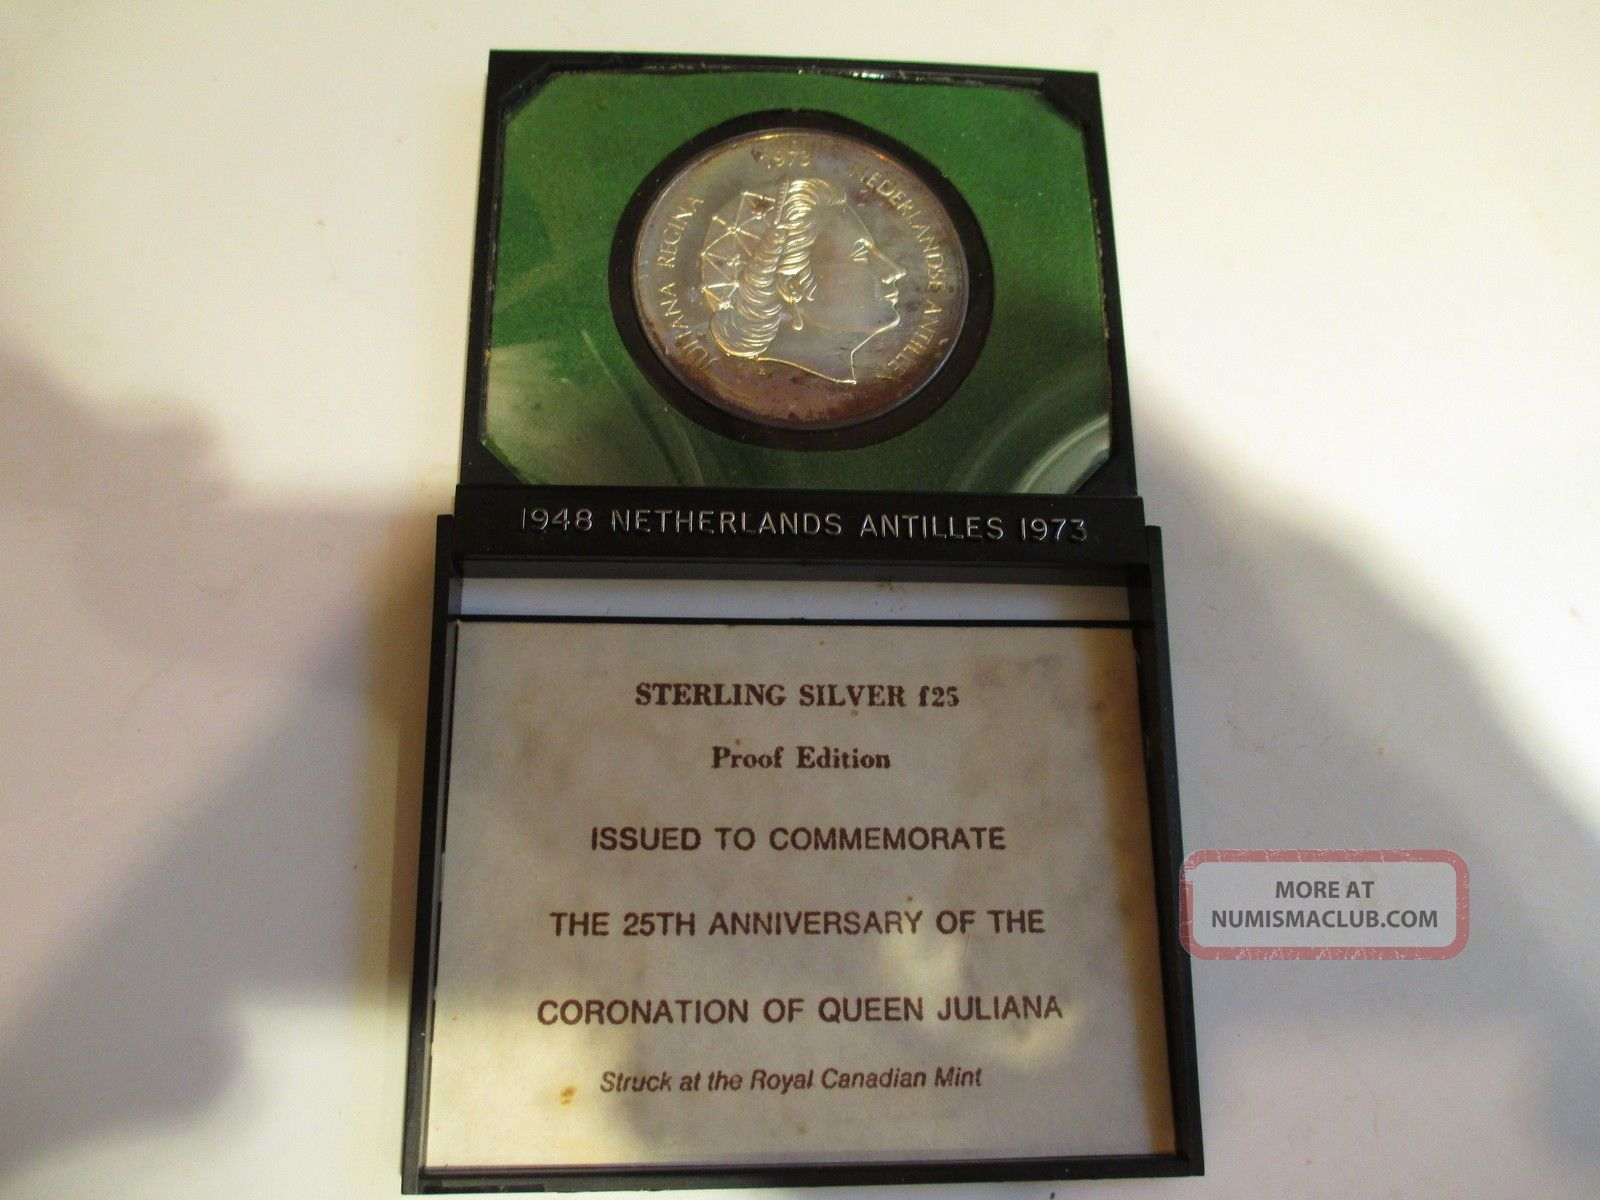 1973 F25 Netherlands Antilles Sterling Silver Proof Coin :1.  675 Ozs Pure Silver Coins: World photo